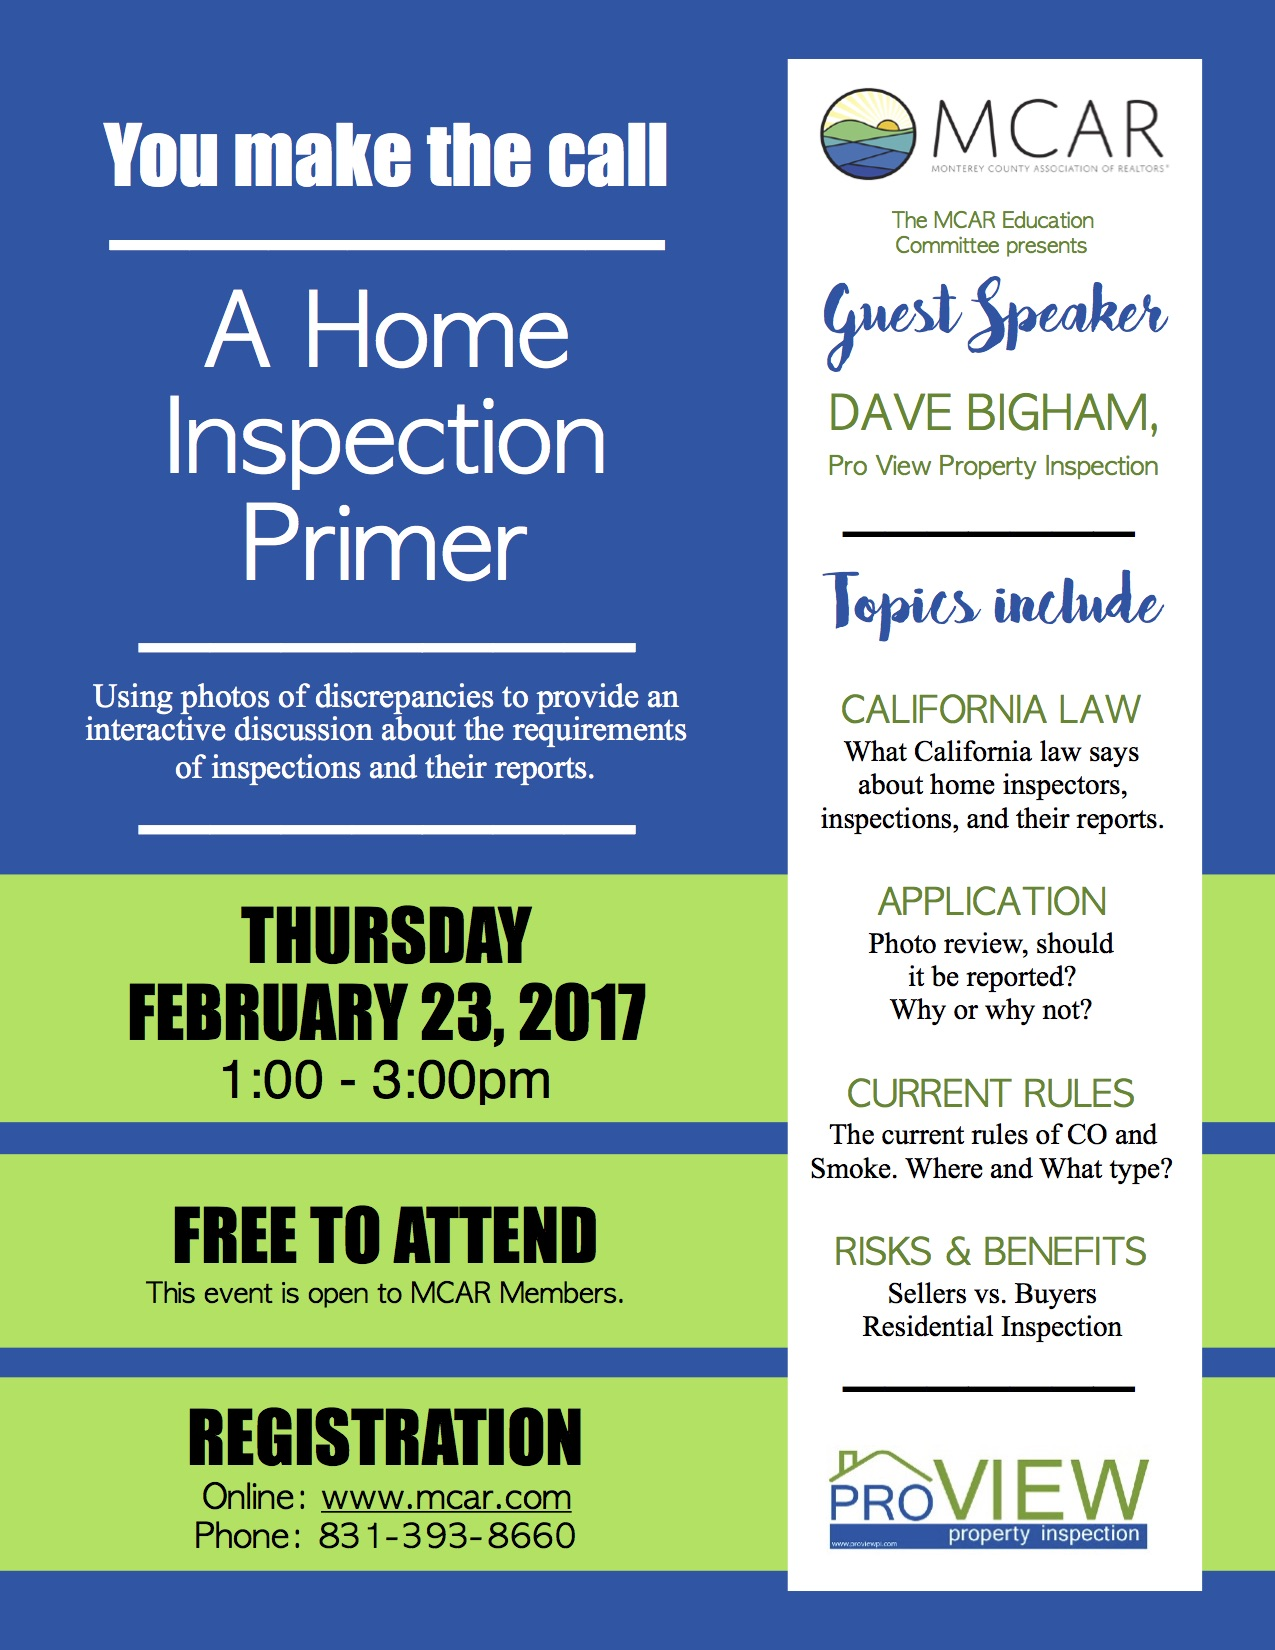 Home Inspection Event Mcar